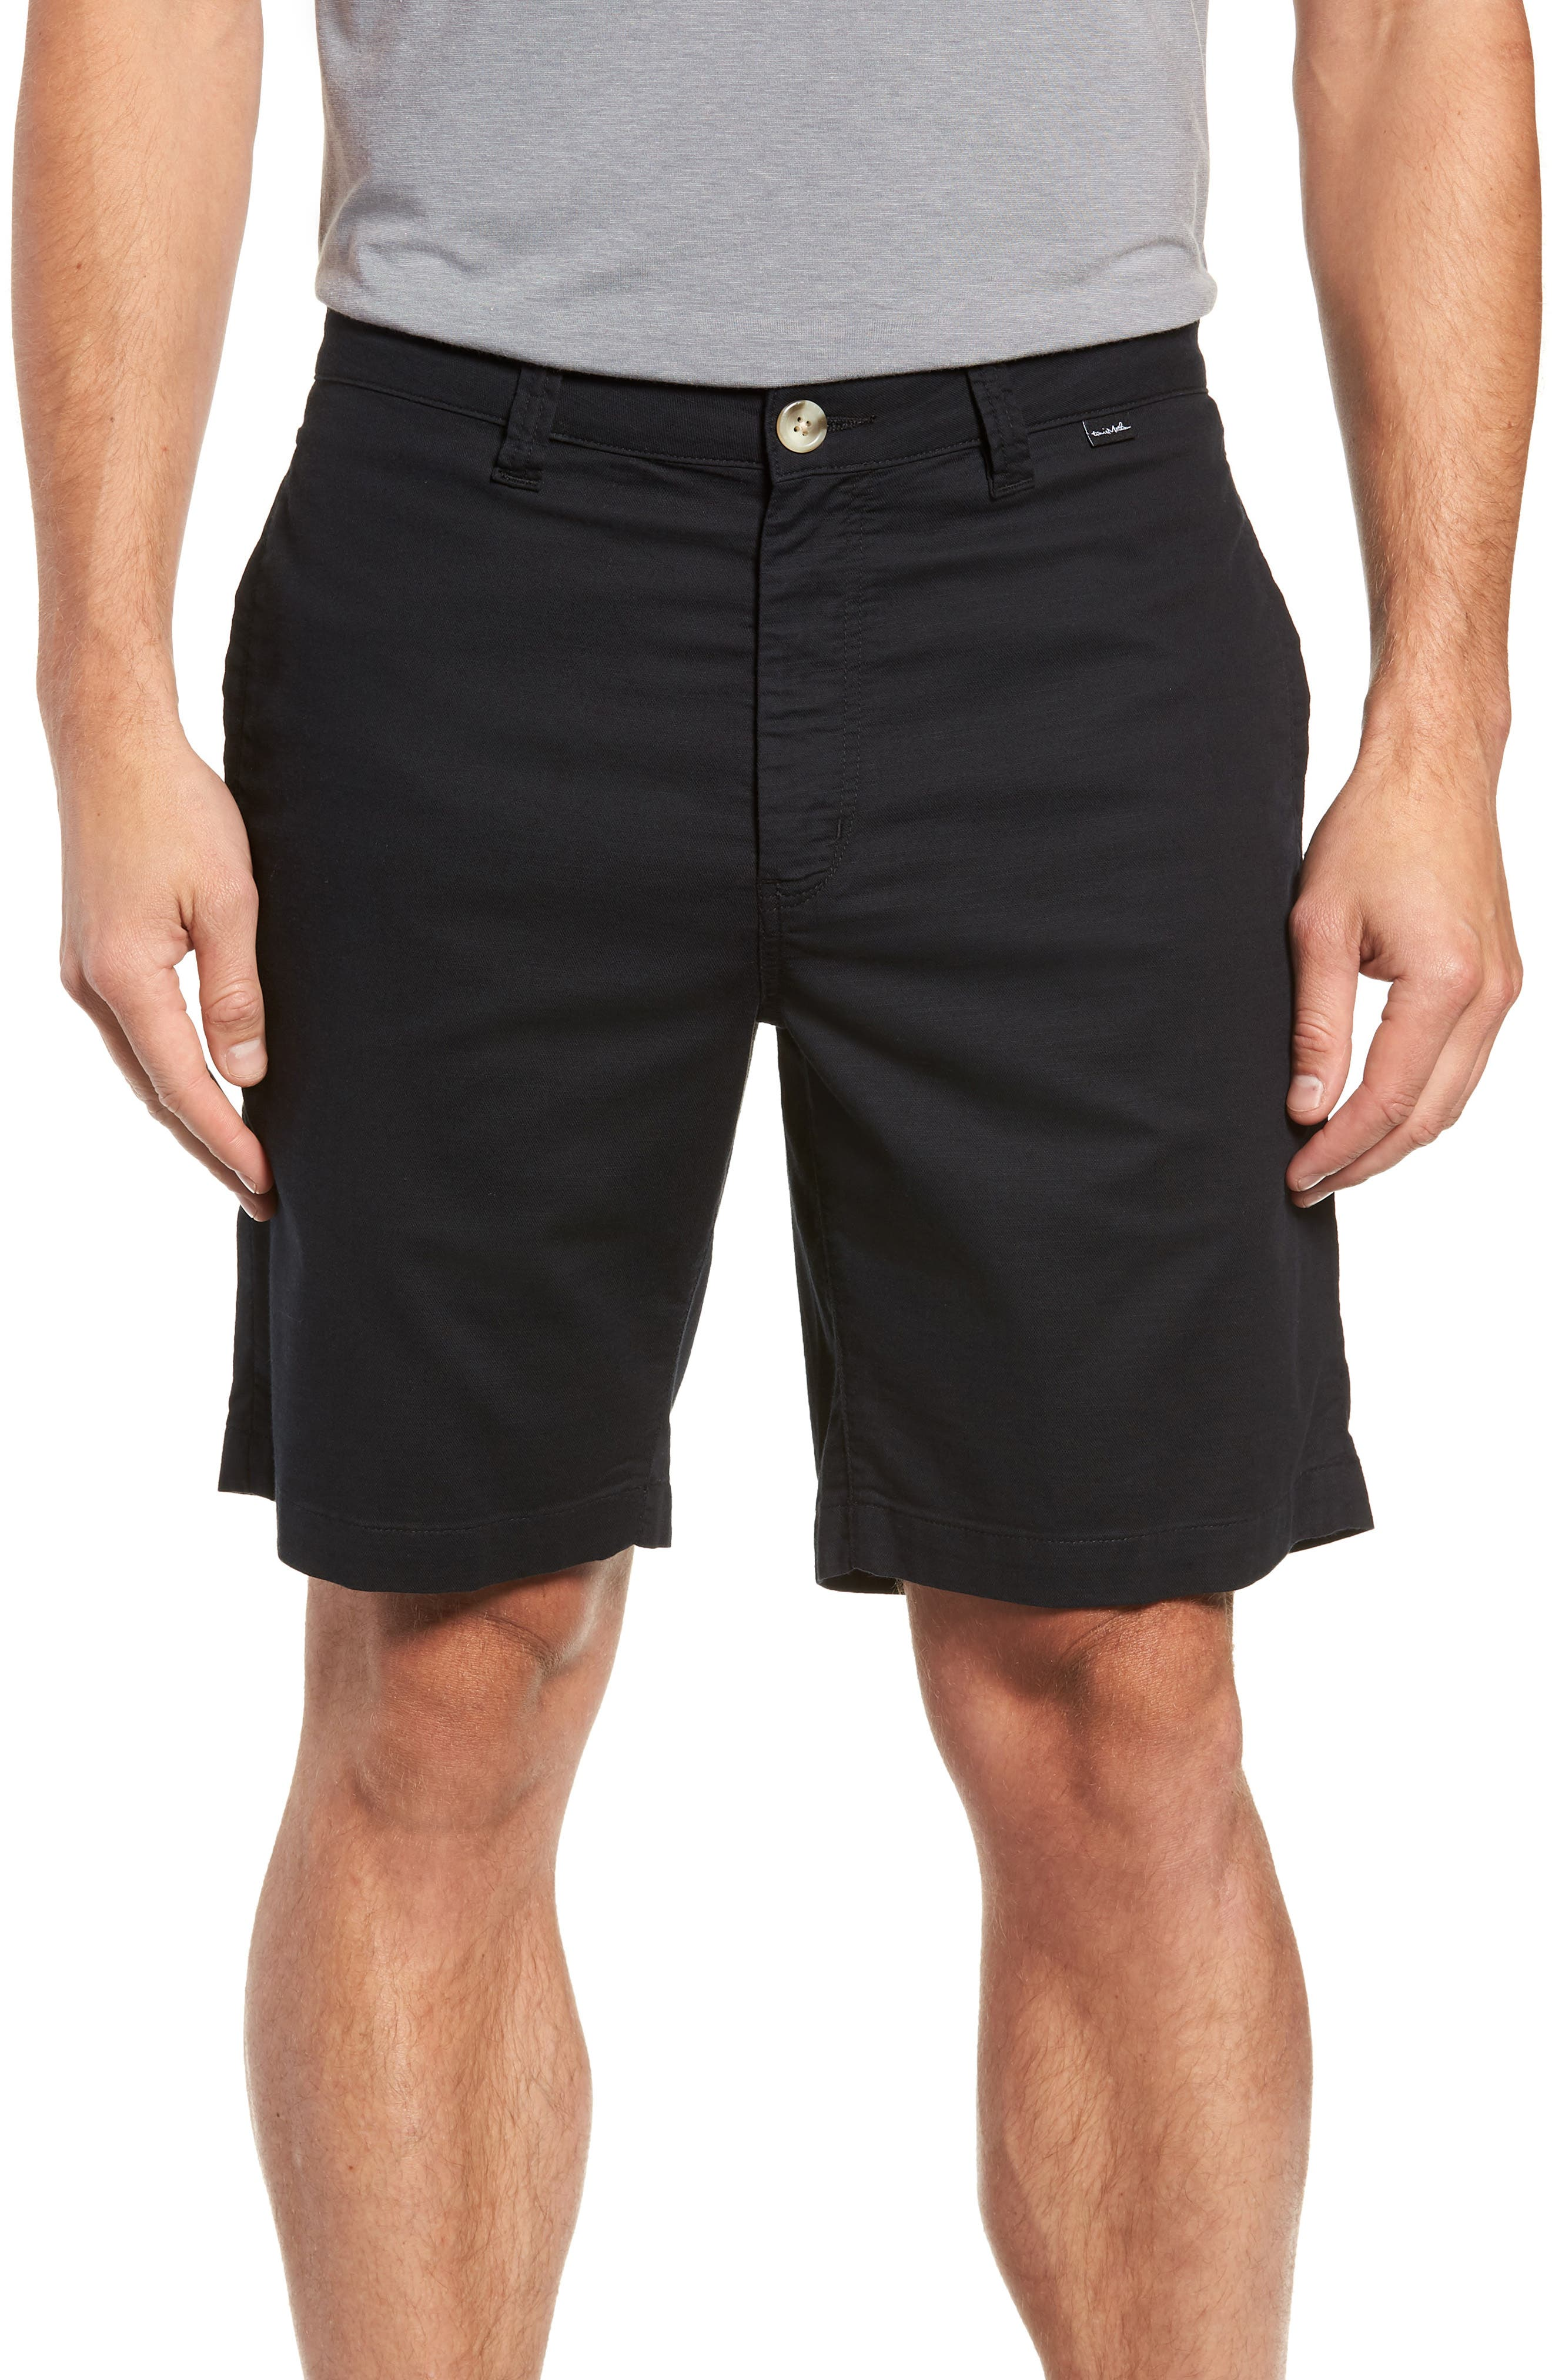 Swearengen Shorts,                             Main thumbnail 1, color,                             BLACK